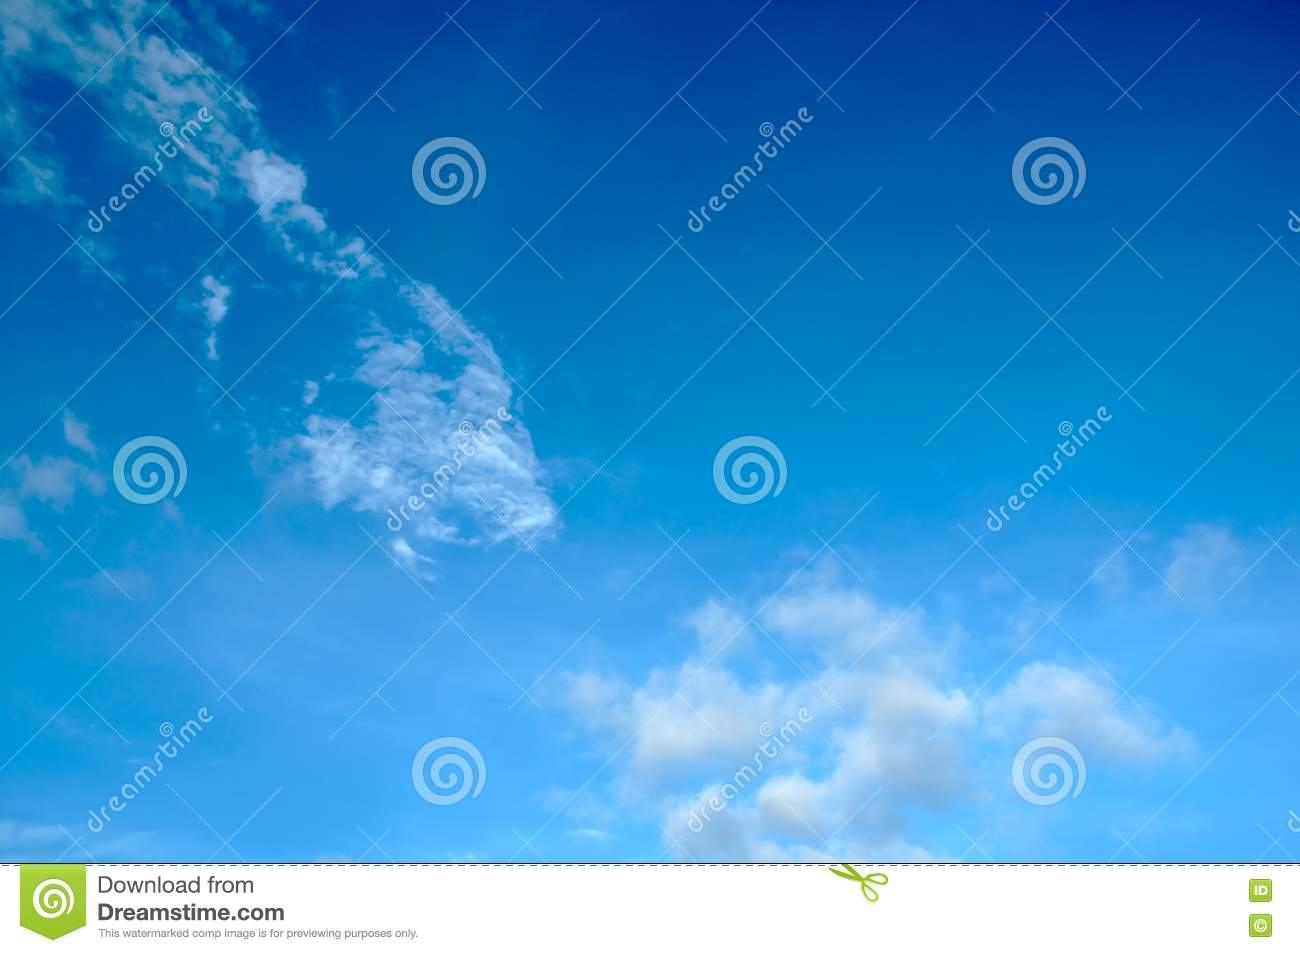 Free Stock Photos  Blue Sky Background Picture. Image  25114618 62225677571